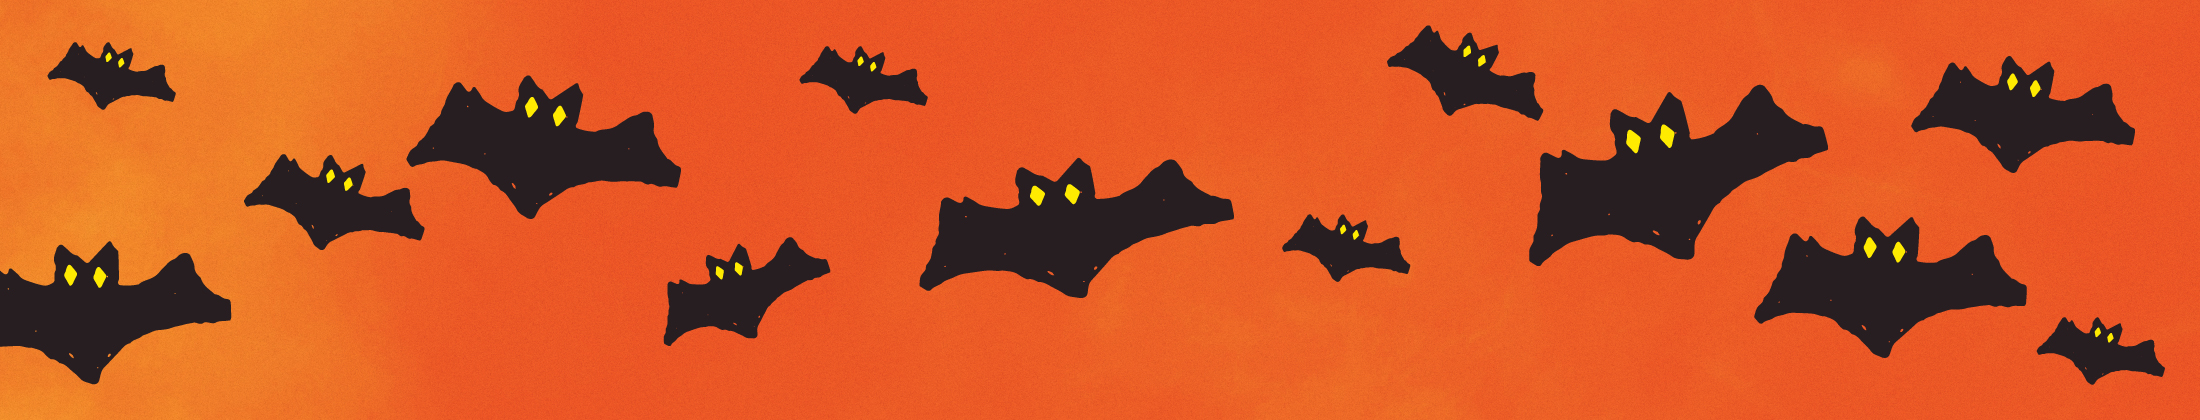 Illustrated bats on an orange background